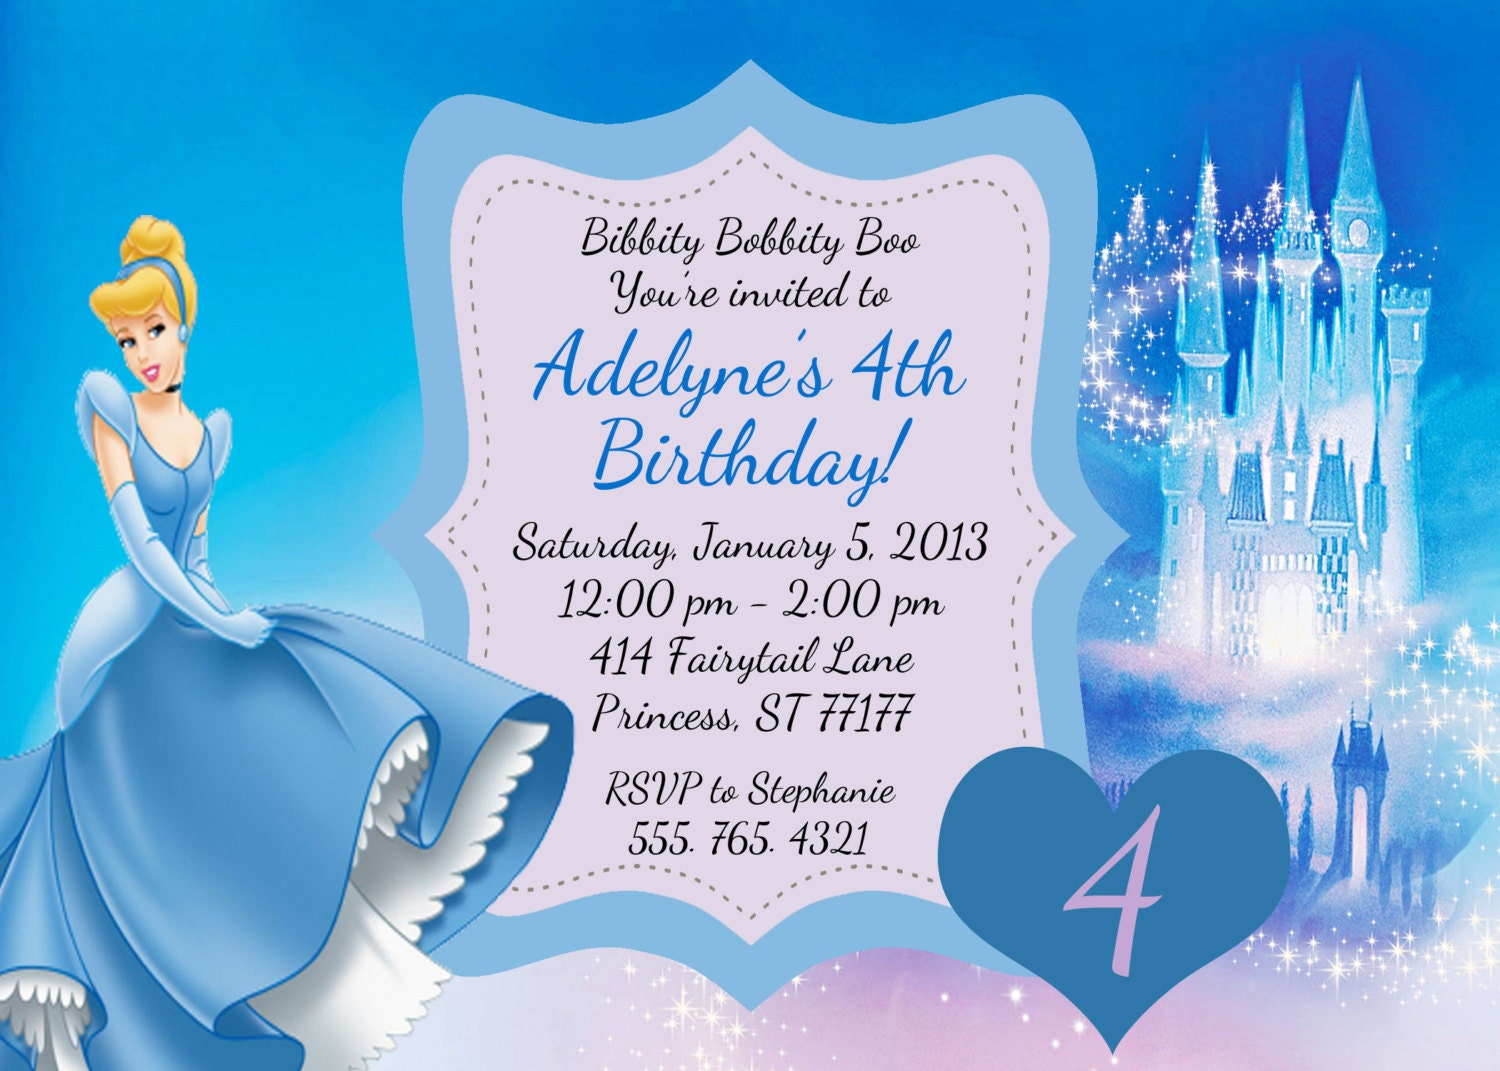 Cinderella birthday invitation by partypassiondesign on etsy for Cinderella invitation to the ball template